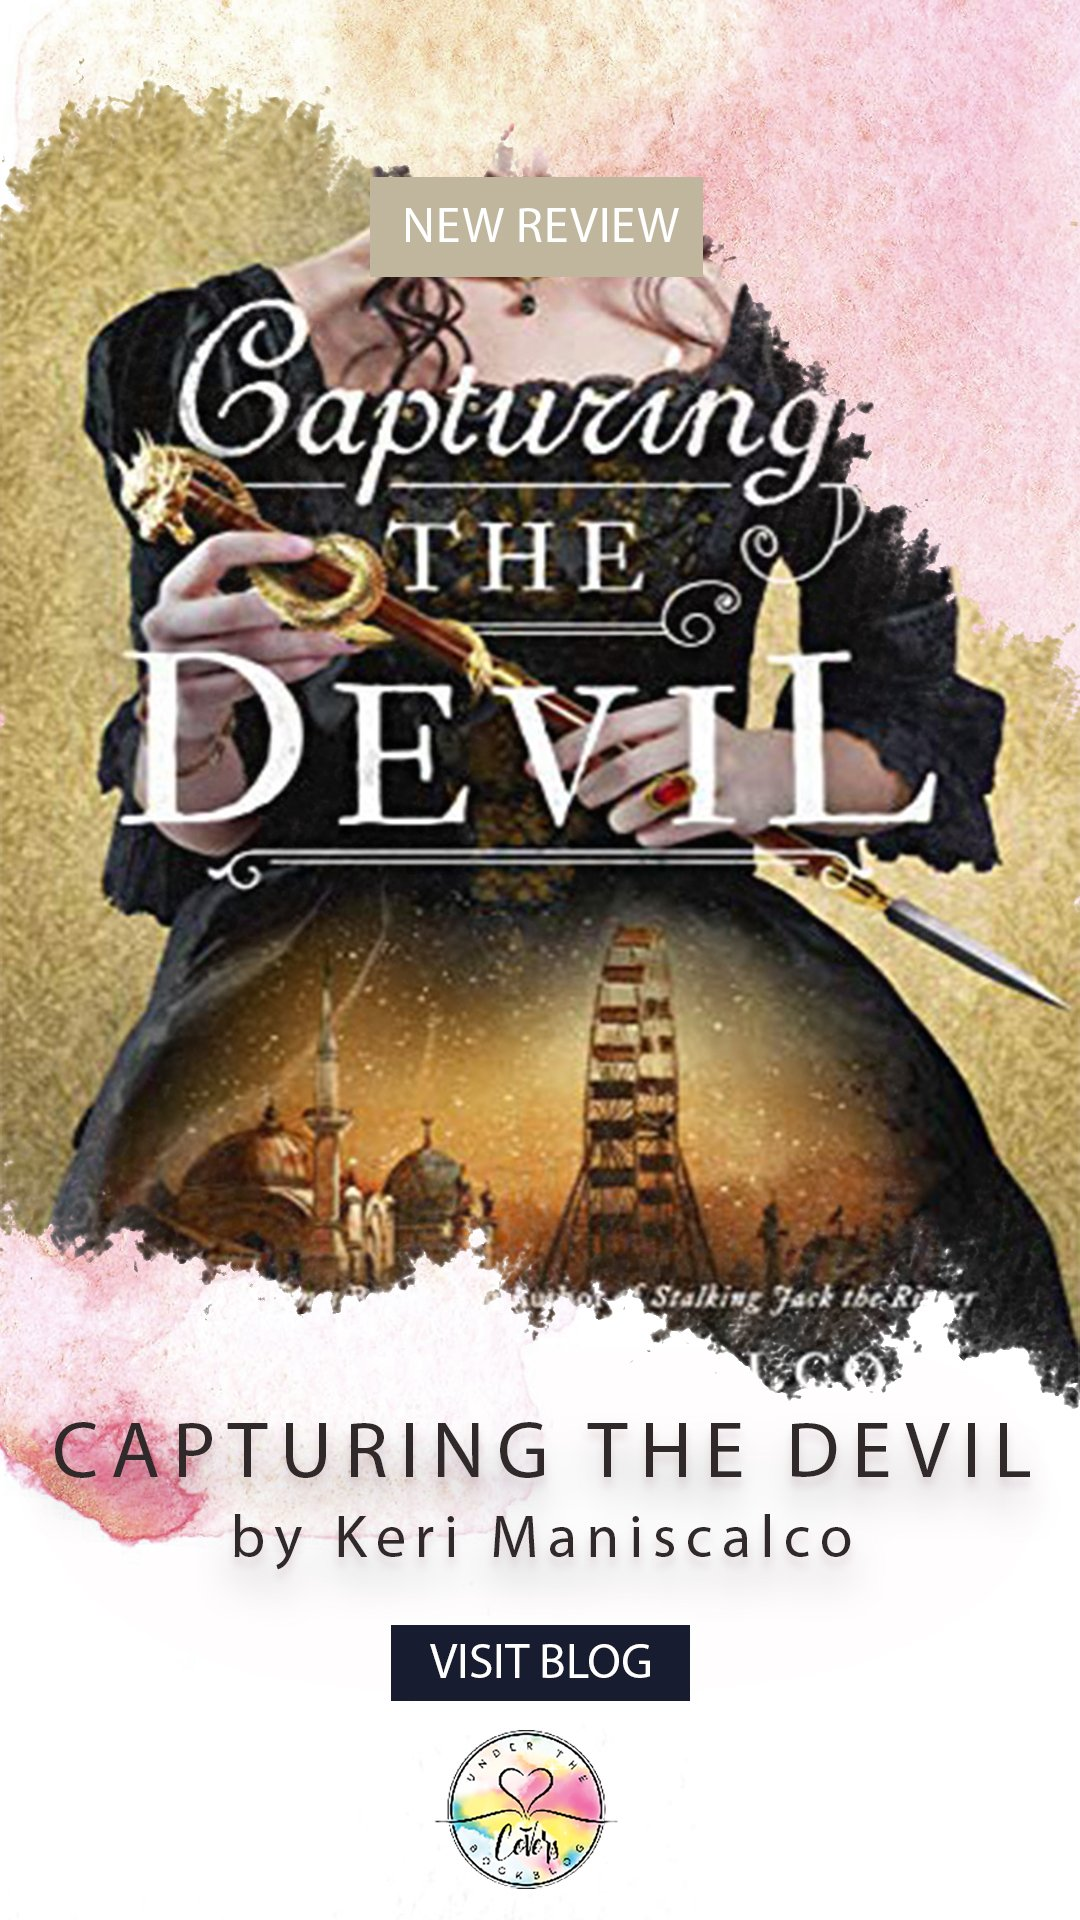 Review: Capturing the Devil by Kerri Maniscalco